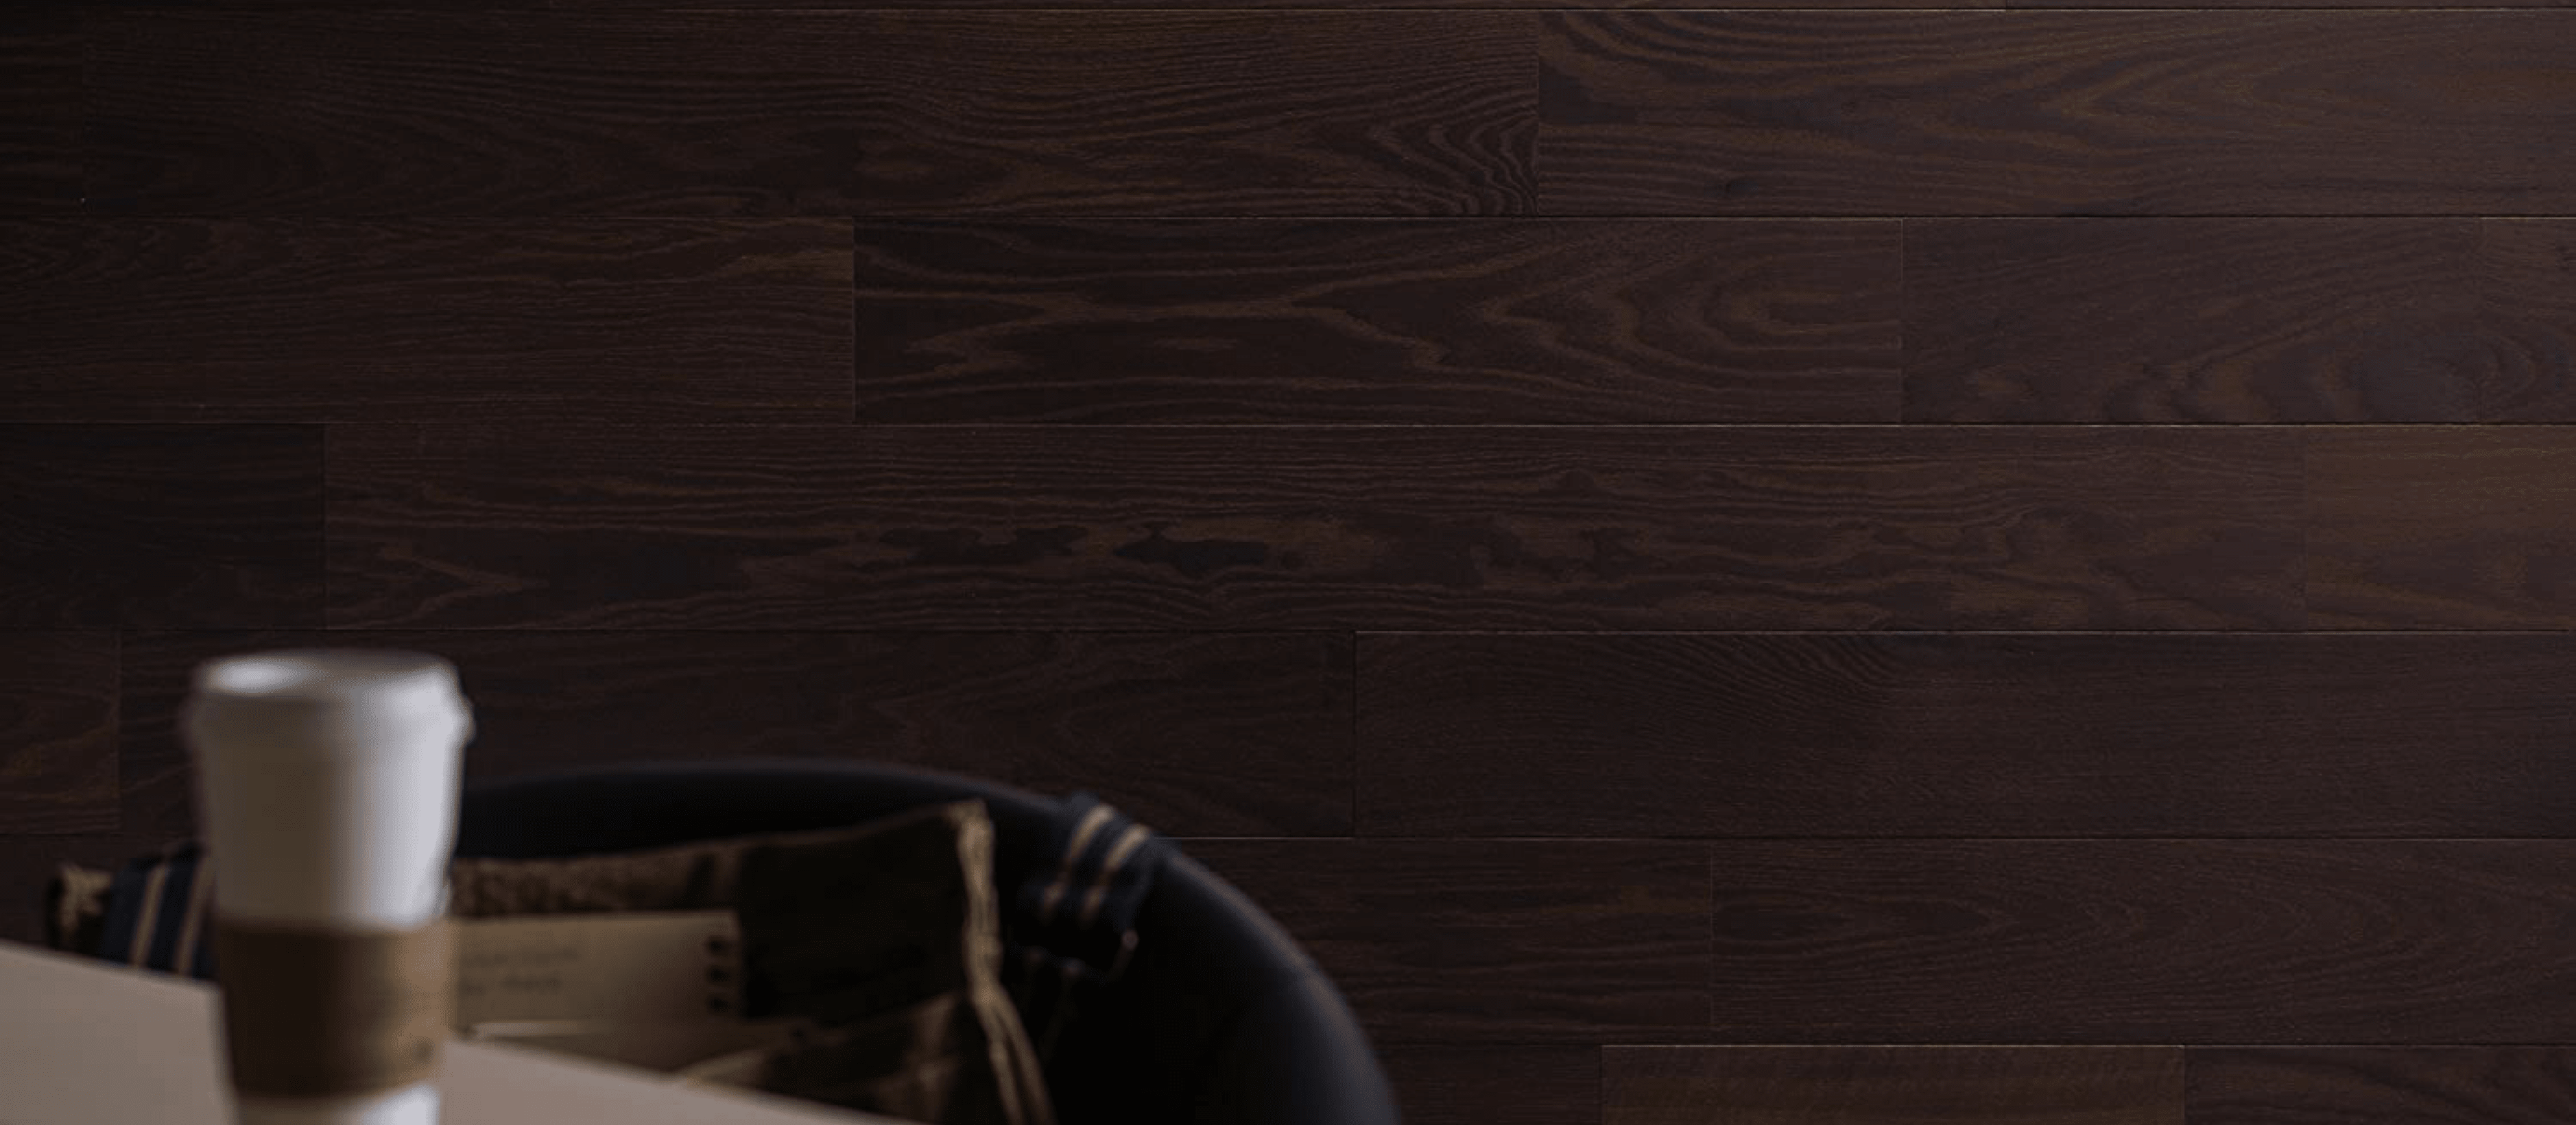 Stikwood Black Cherry peel and stick wall and ceiling planks with dark brown and red colored finish with coffee cup in foreground.